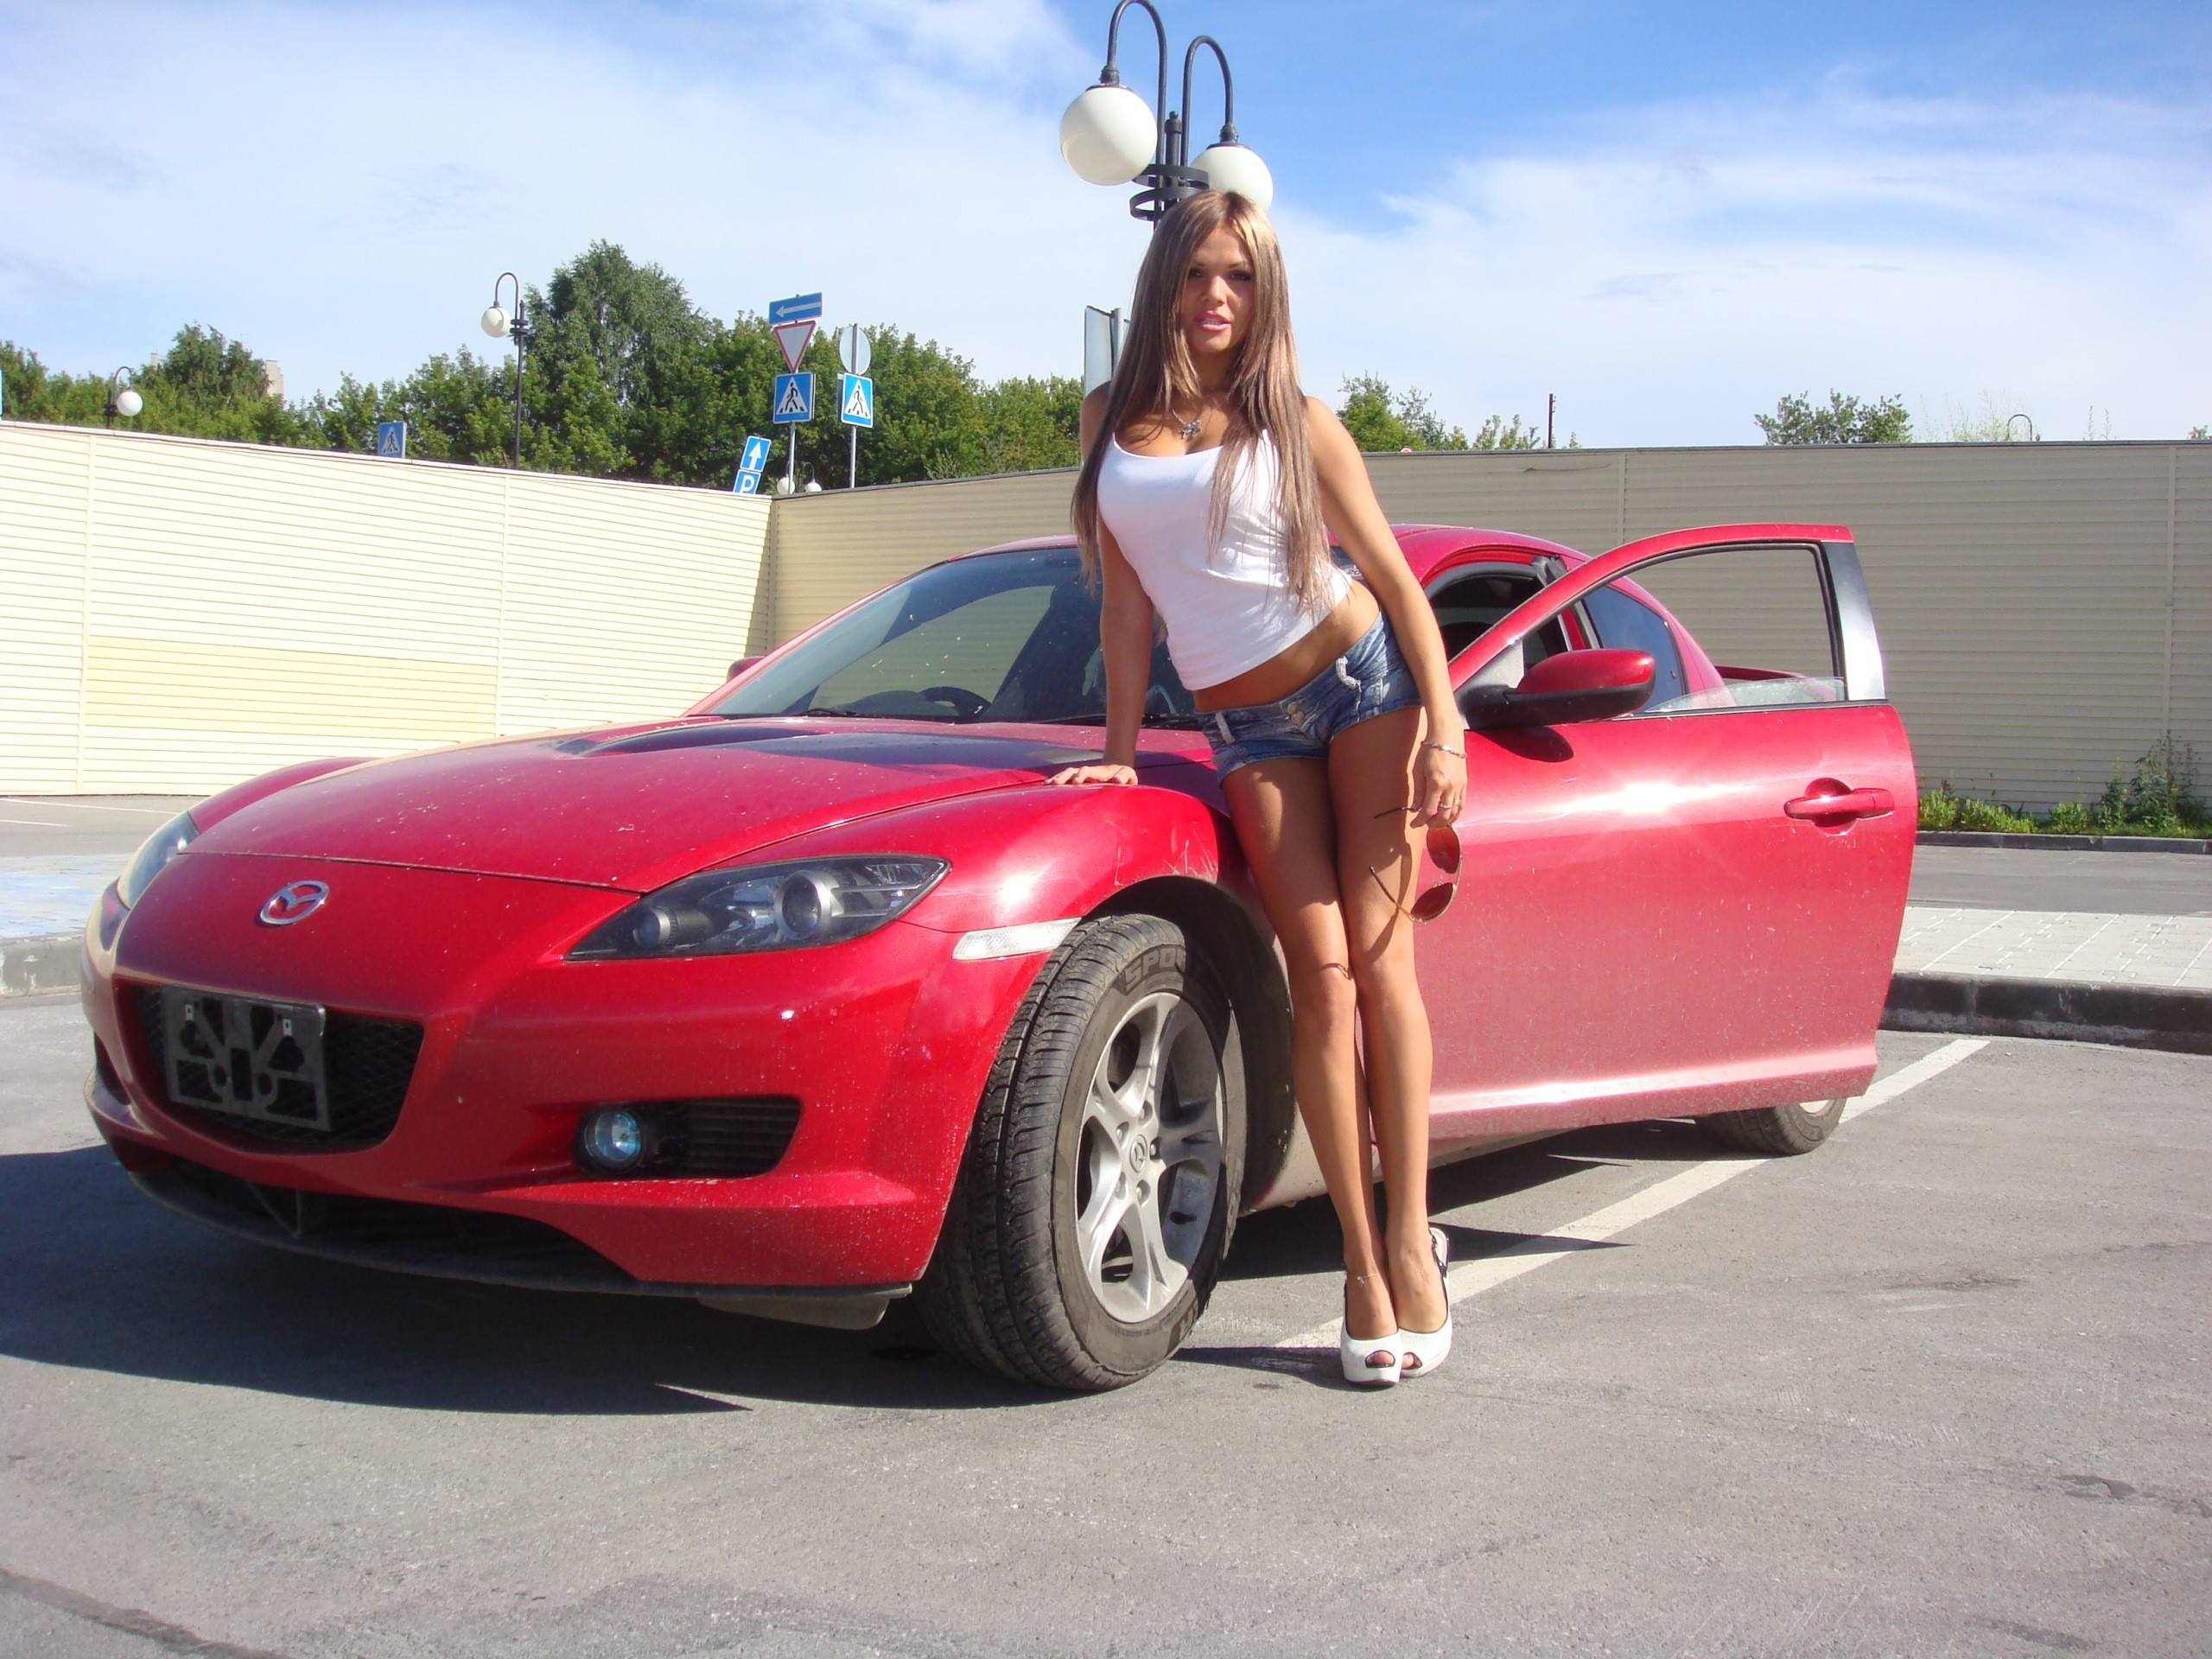 blondes woman cars models HD Wallpaper